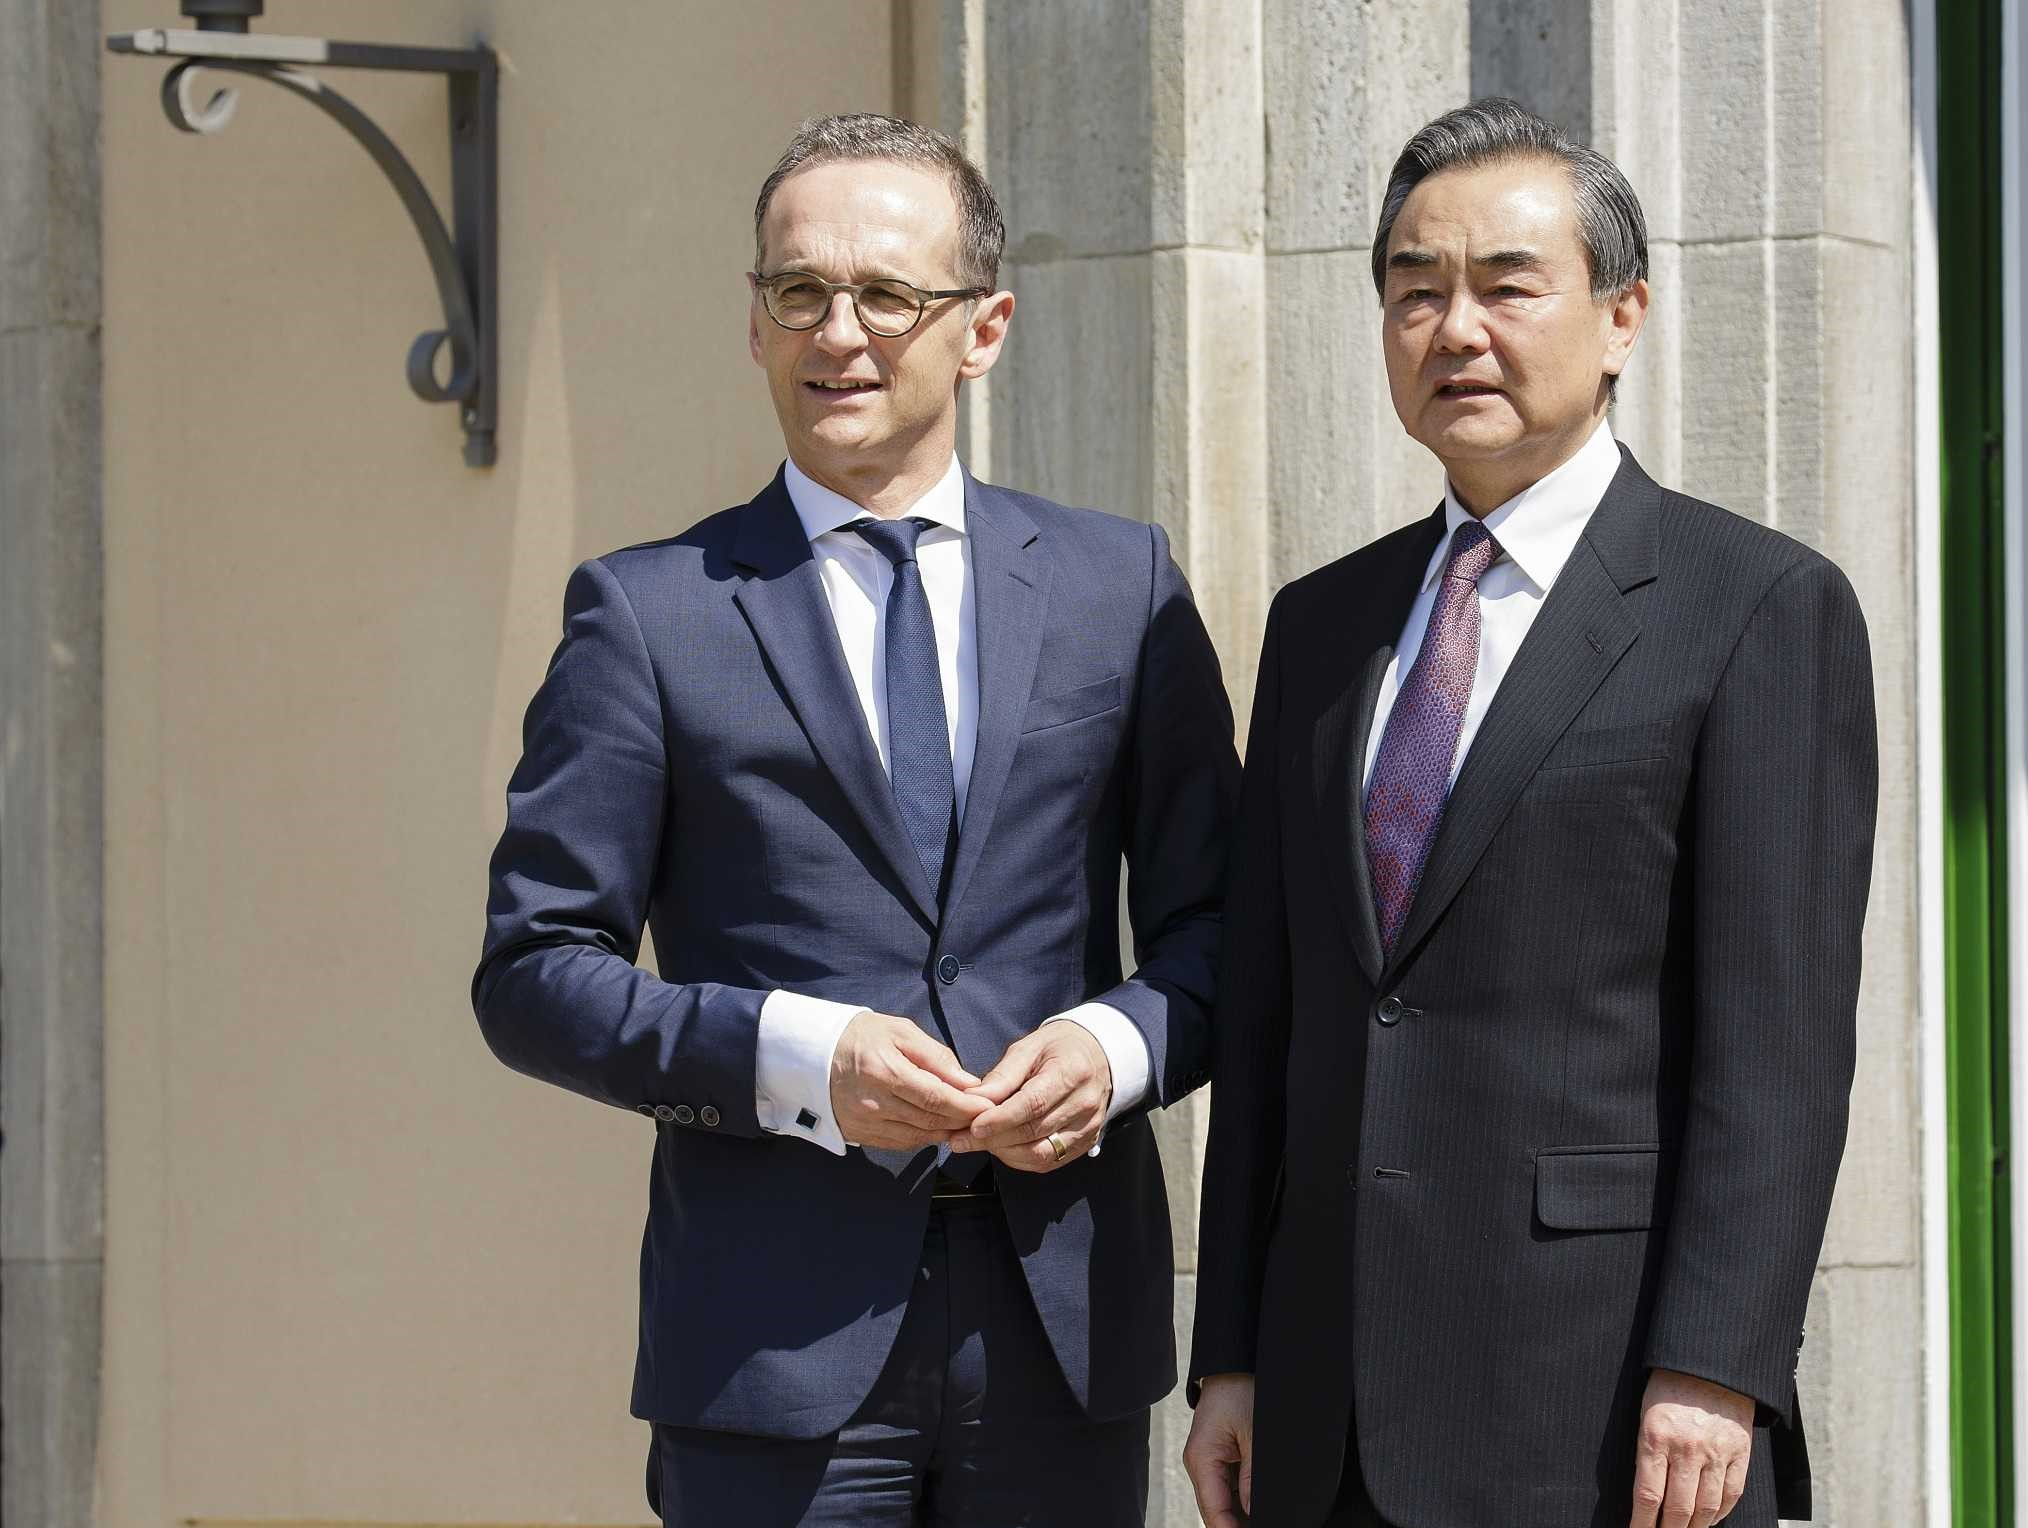 A triple win for the EU, CEECs and China?